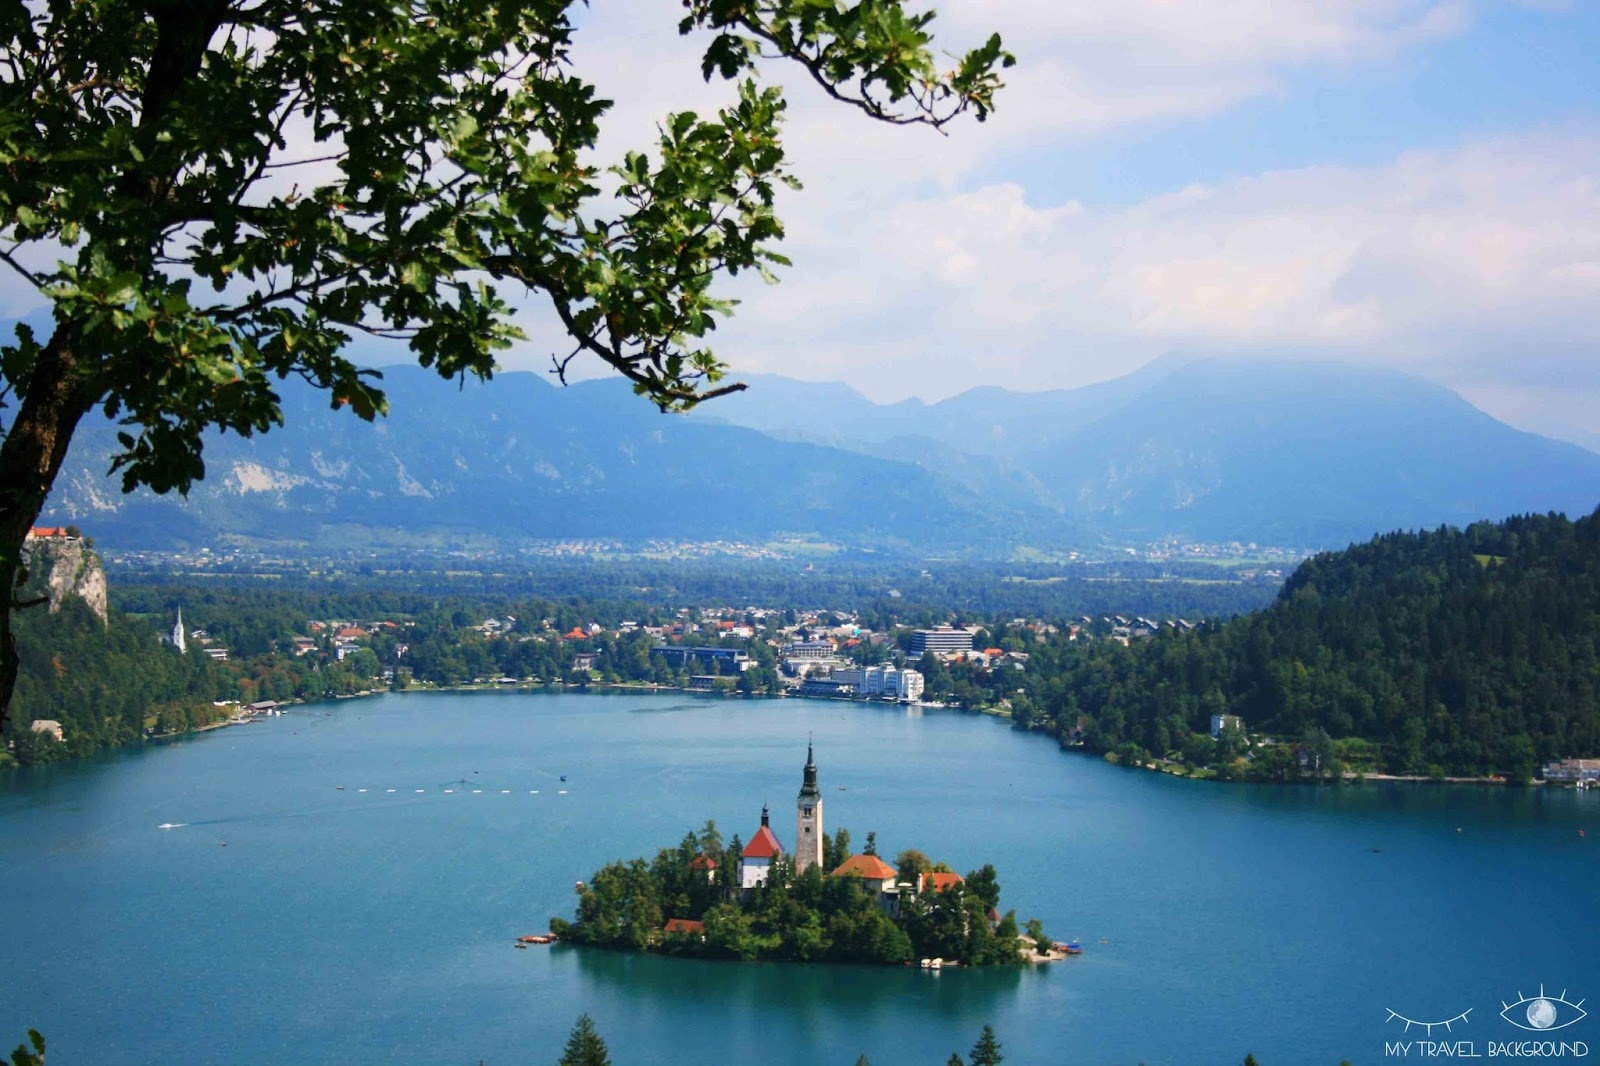 My Travel Background : cartes postales de Slovénie - Le lac de Bled